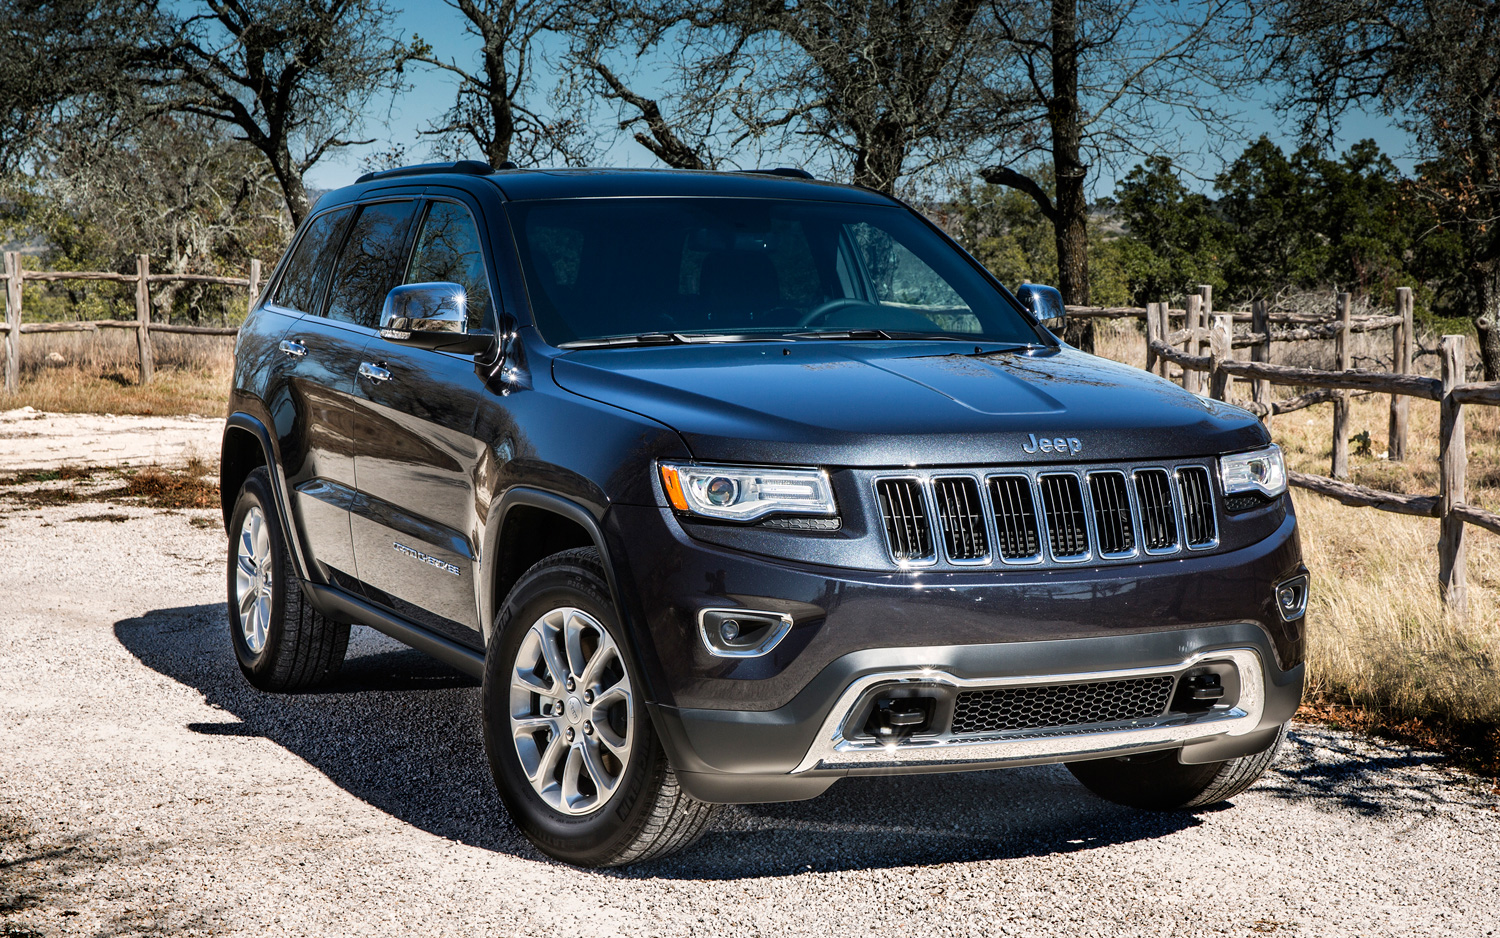 jeep grand cherokee diesel 640 x 400 jpeg 166kb 2015 jeep grand. Cars Review. Best American Auto & Cars Review